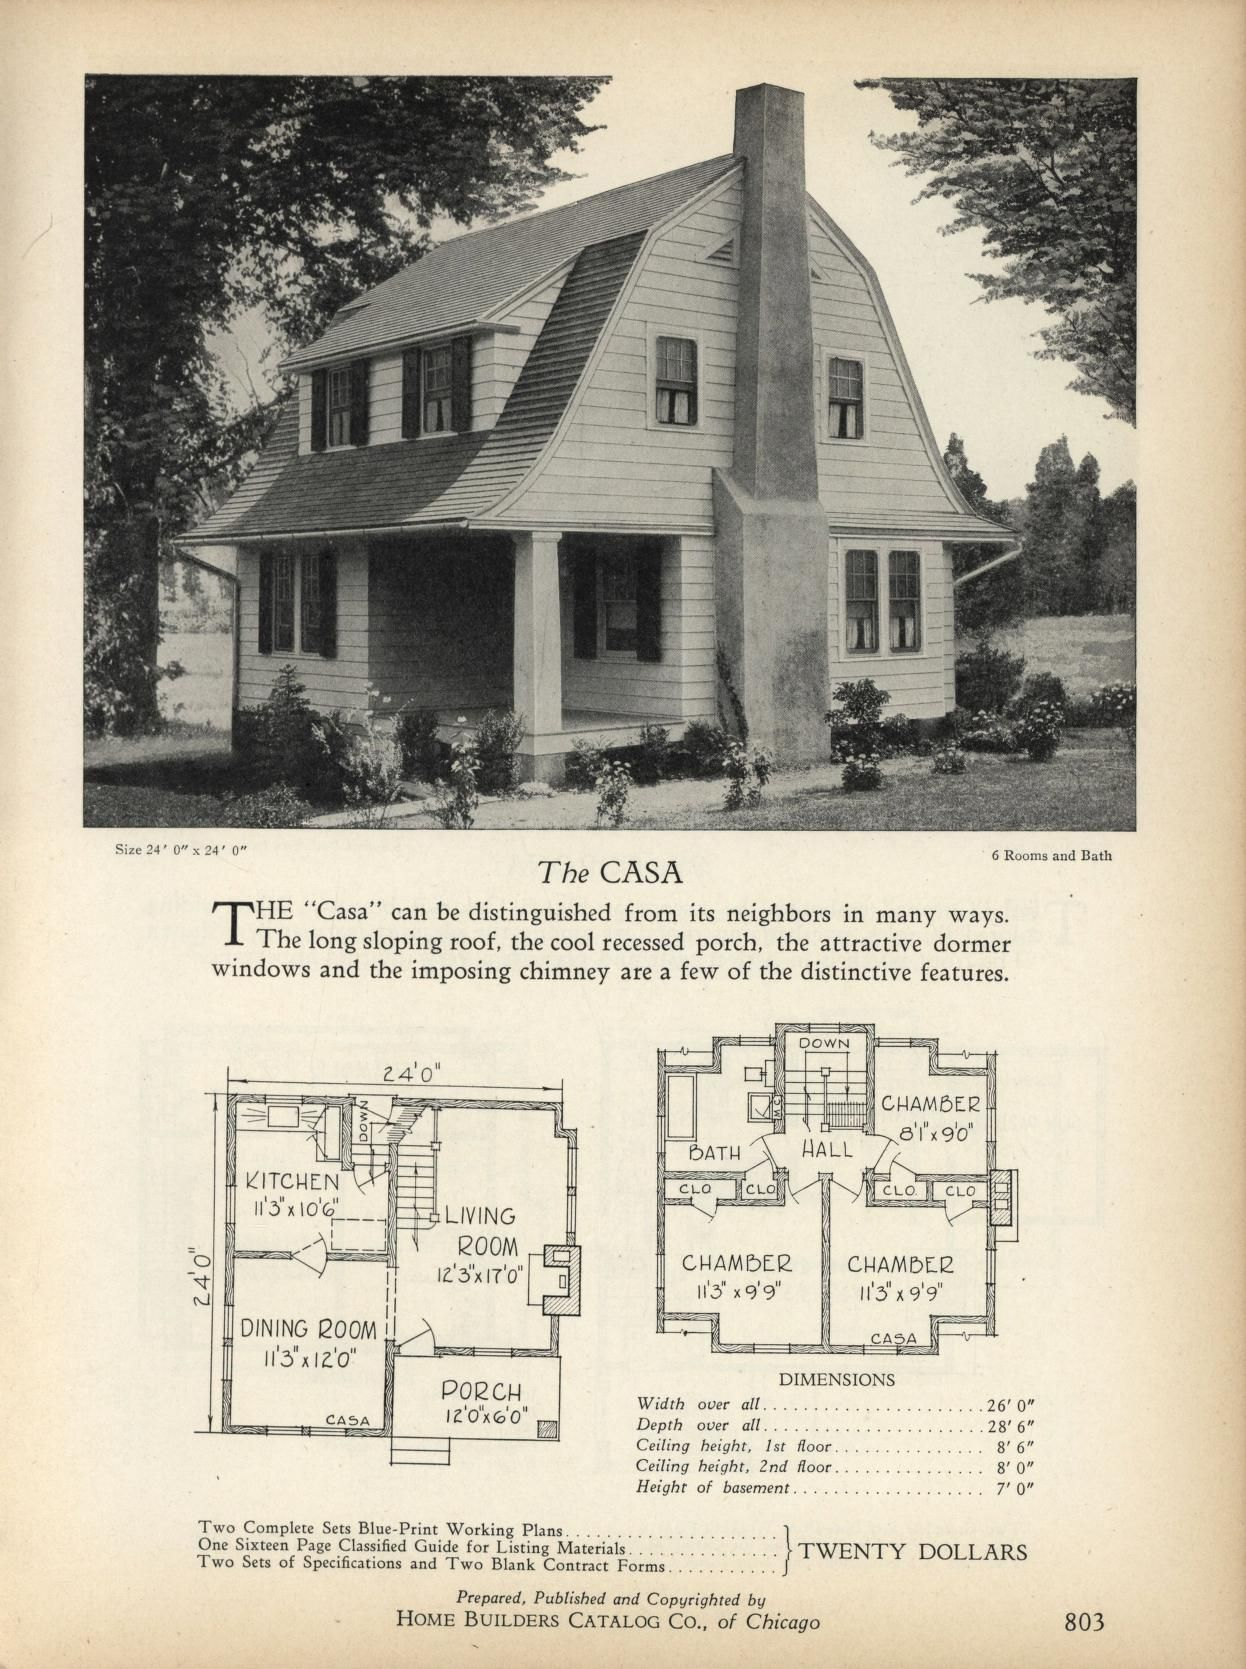 The CASA - Home Builders Catalog: plans of all types of small homes by Home Builders Catalog Co.  Published 1928